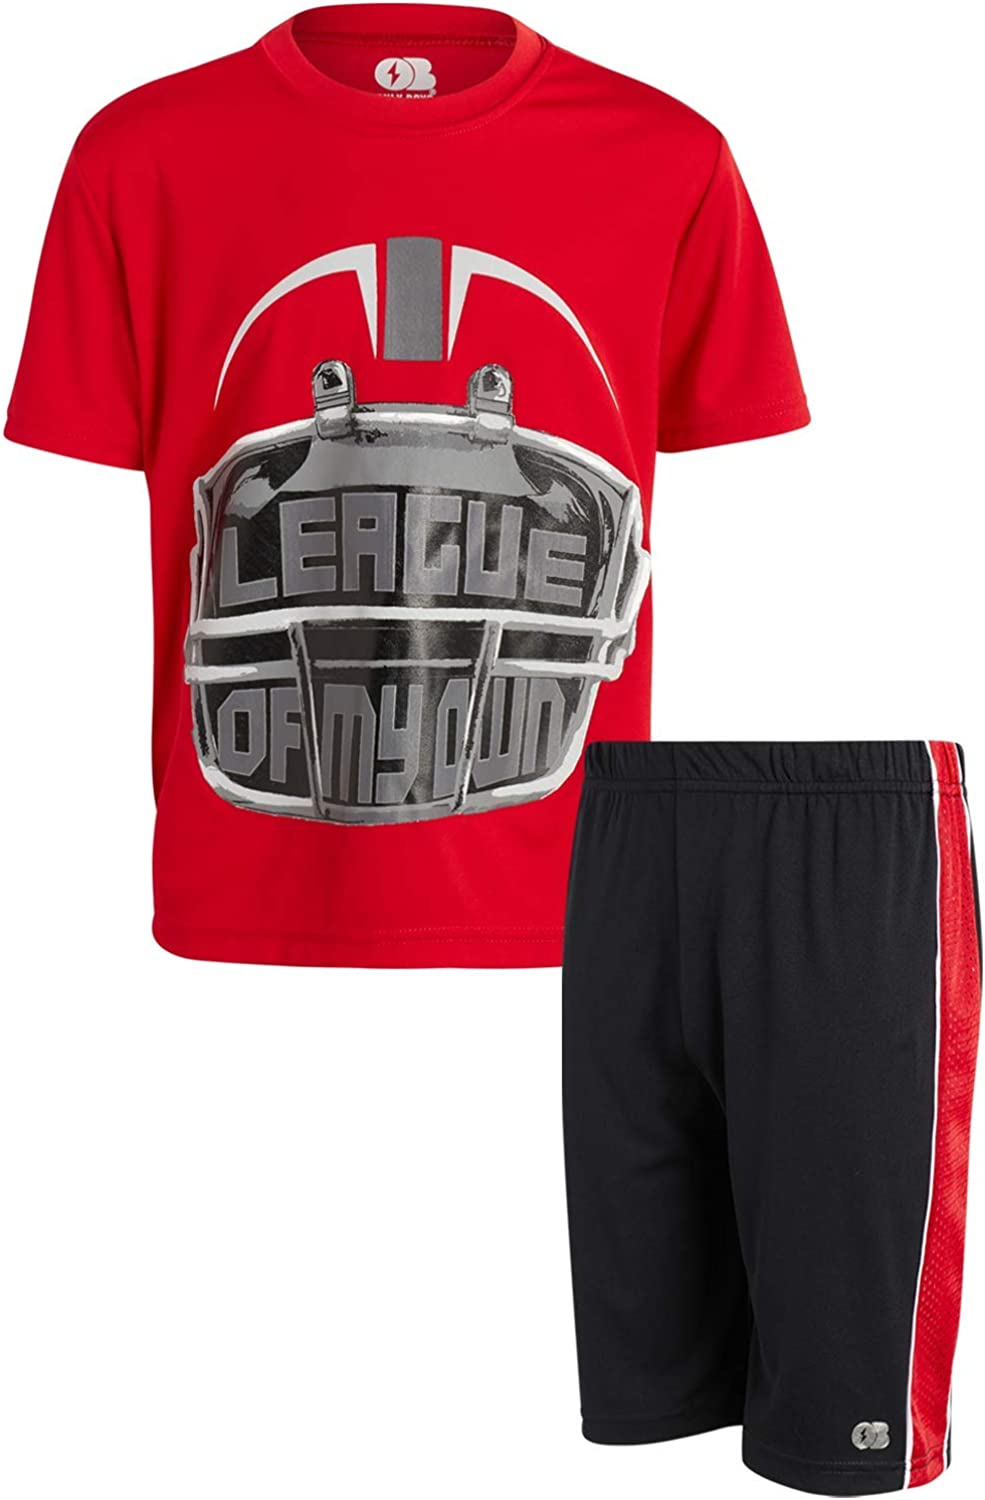 ONLY Bargain sale BOYS Basketball Short Set - Max 49% OFF Athletic and Tee 2 Shirt Piece